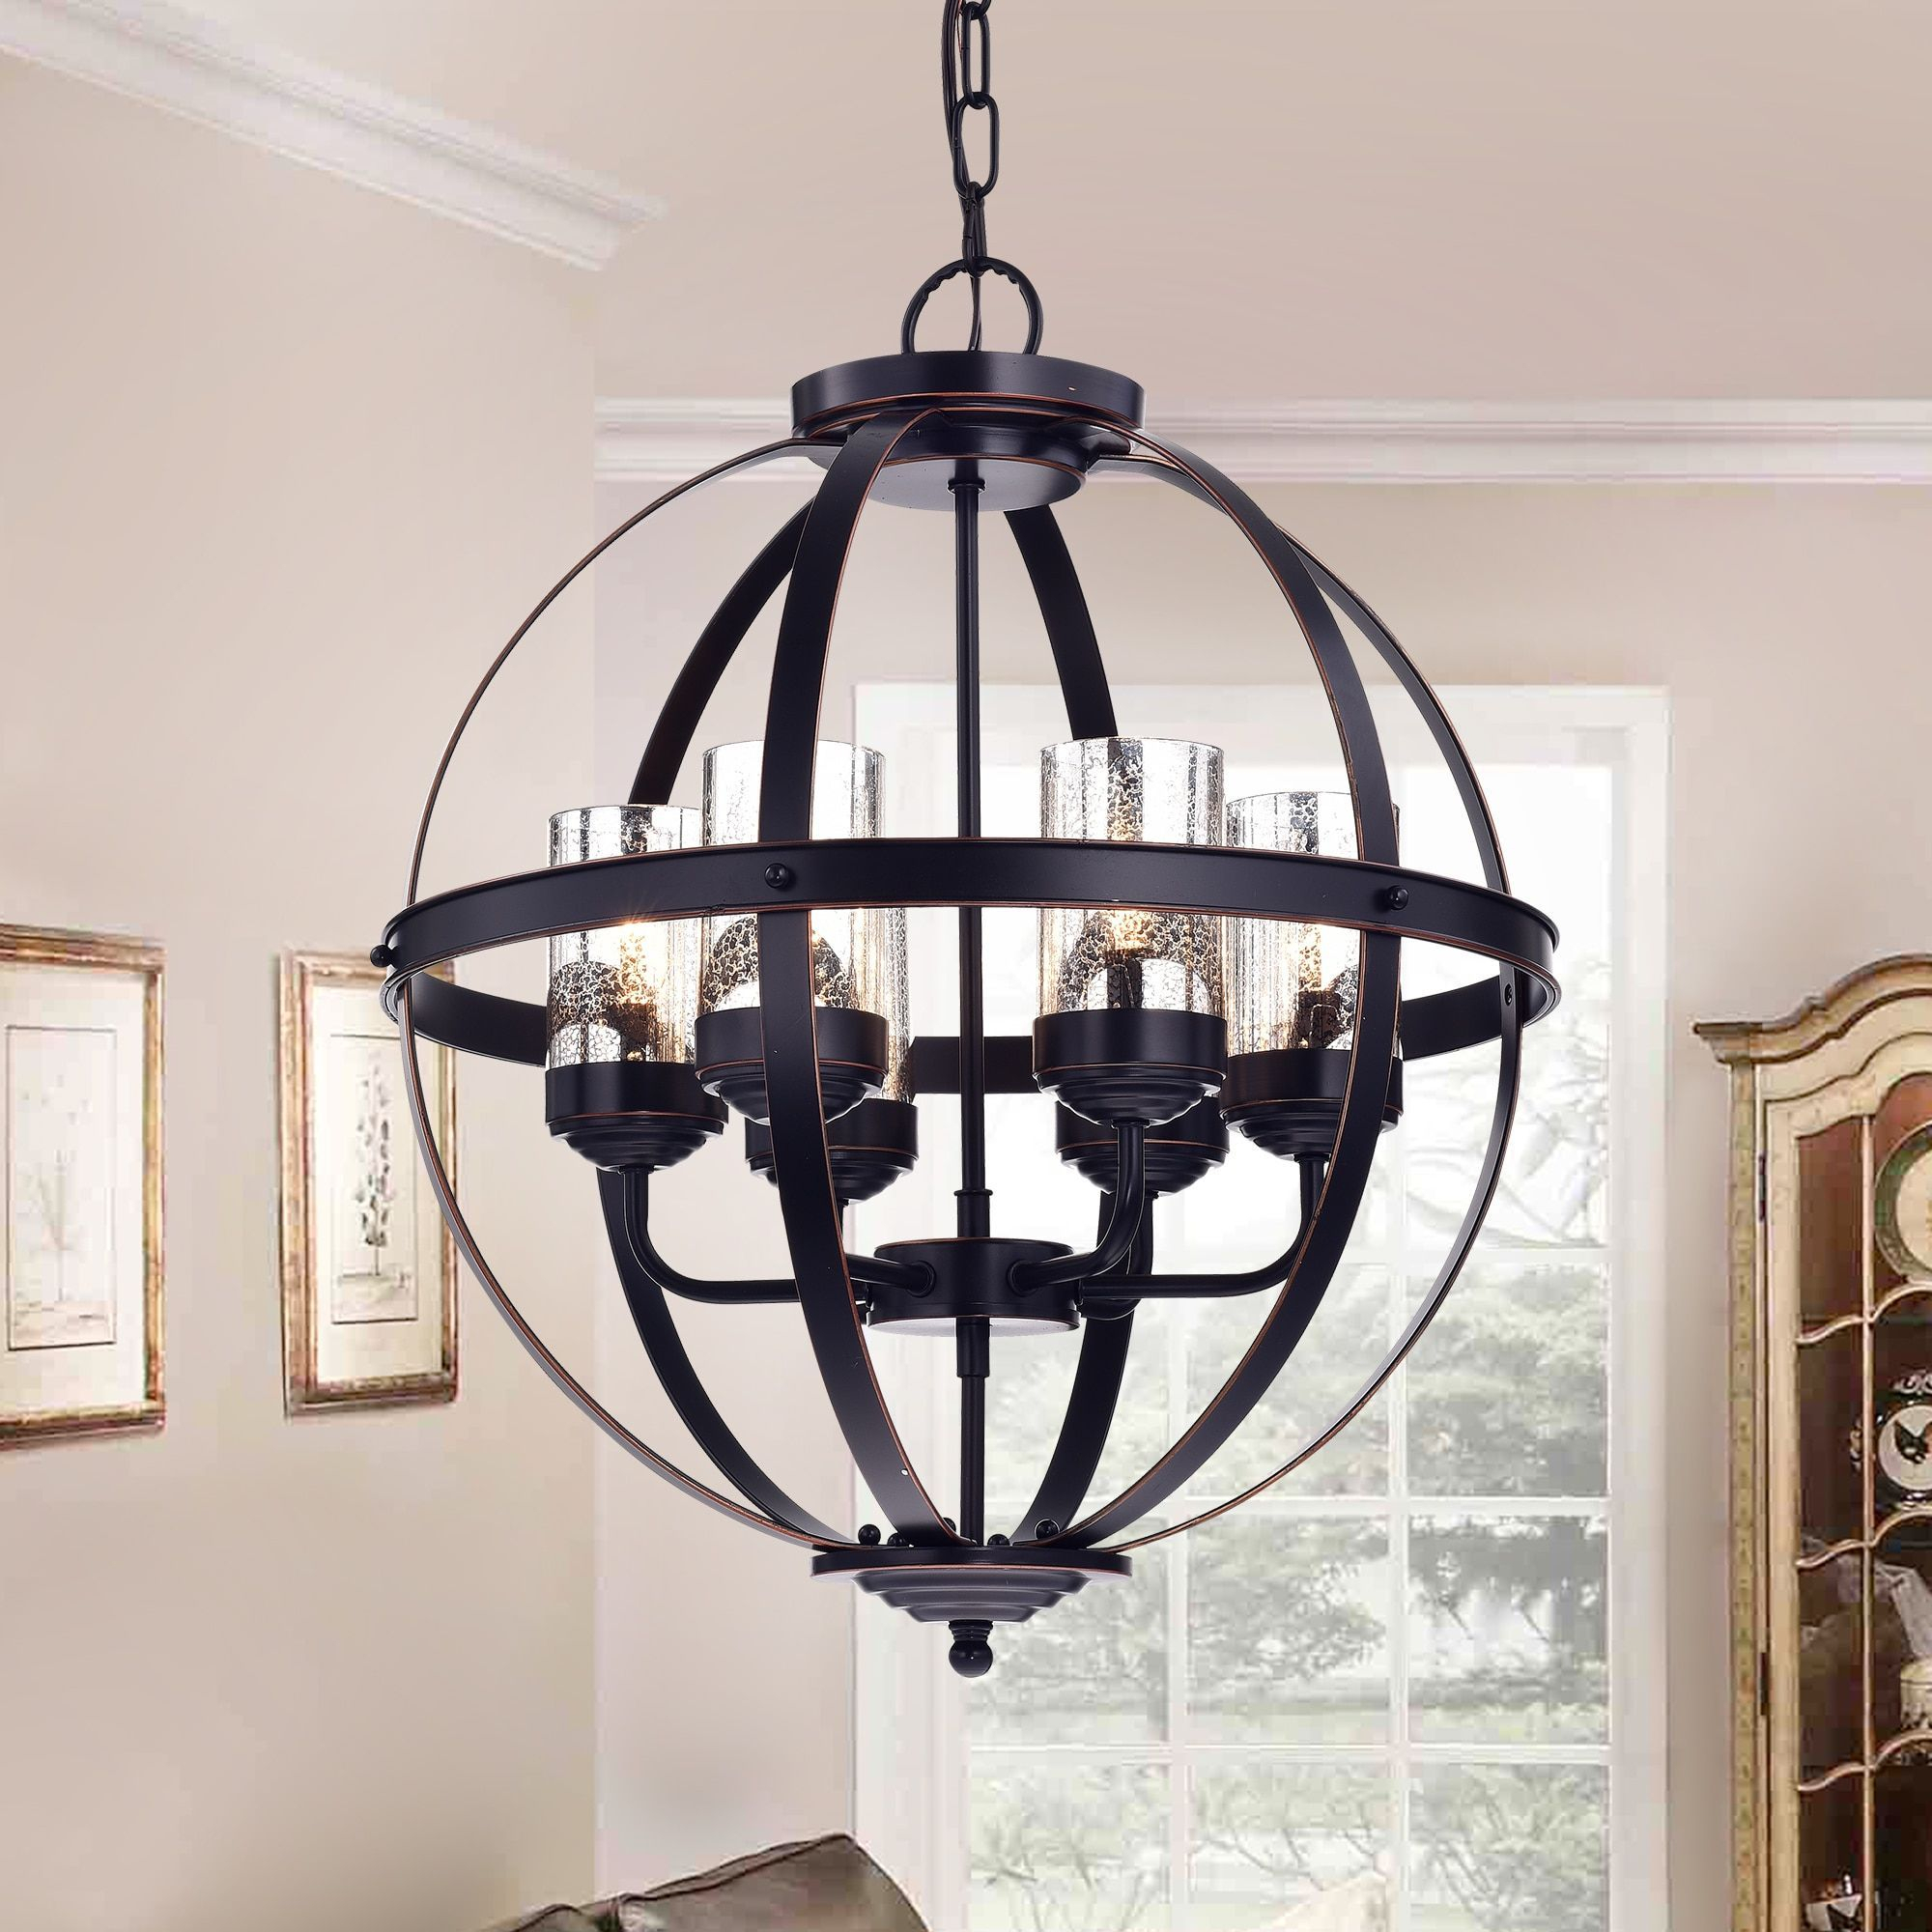 Warehouse Of Tiffany Almog Oil Rubbed Bronze 19-Inch Round with regard to Hermione 1-Light Single Drum Pendants (Image 29 of 30)